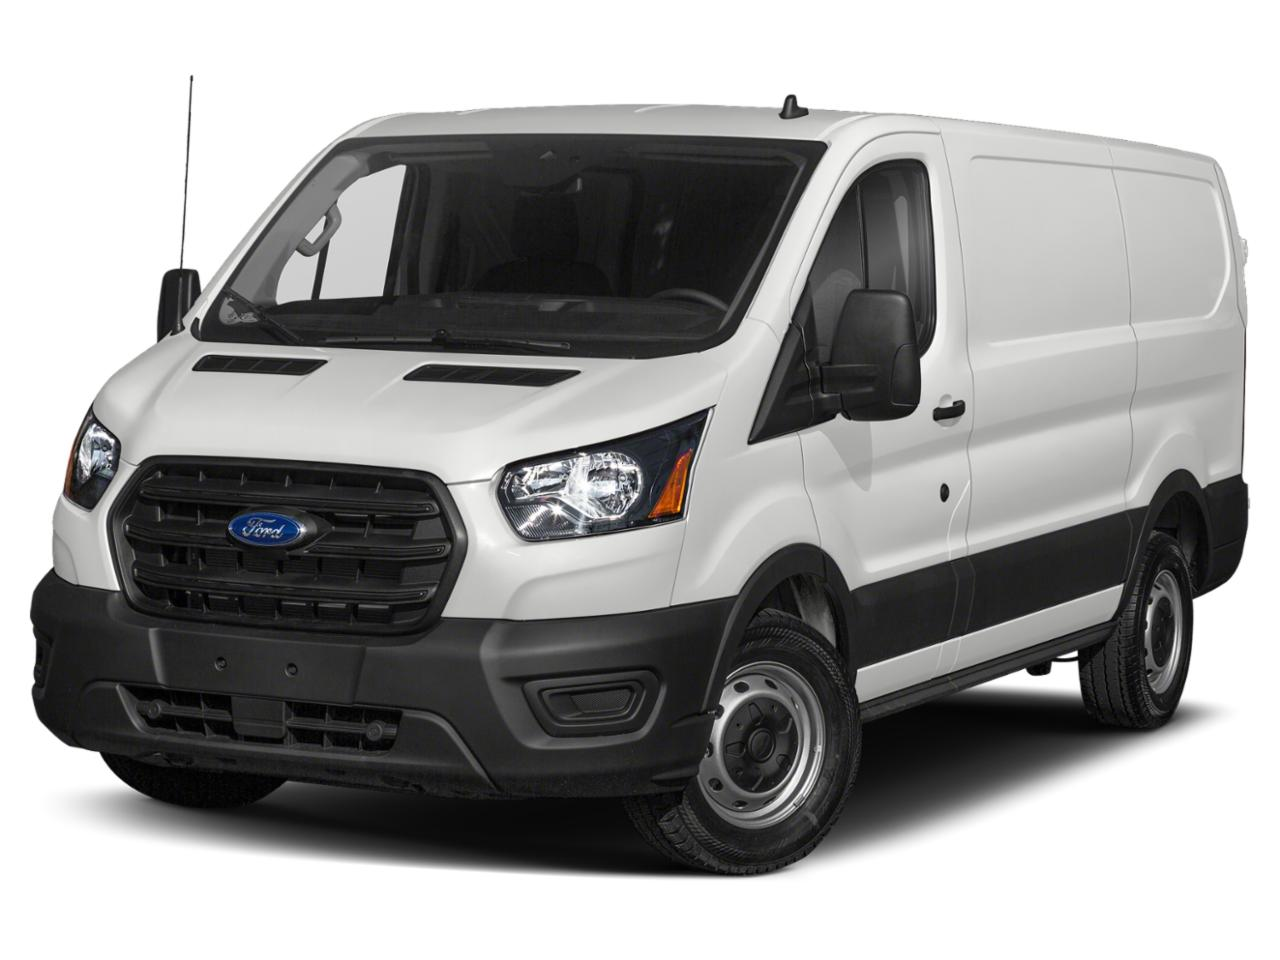 2020 Ford Transit Passenger Wagon Vehicle Photo in Joliet, IL 60435